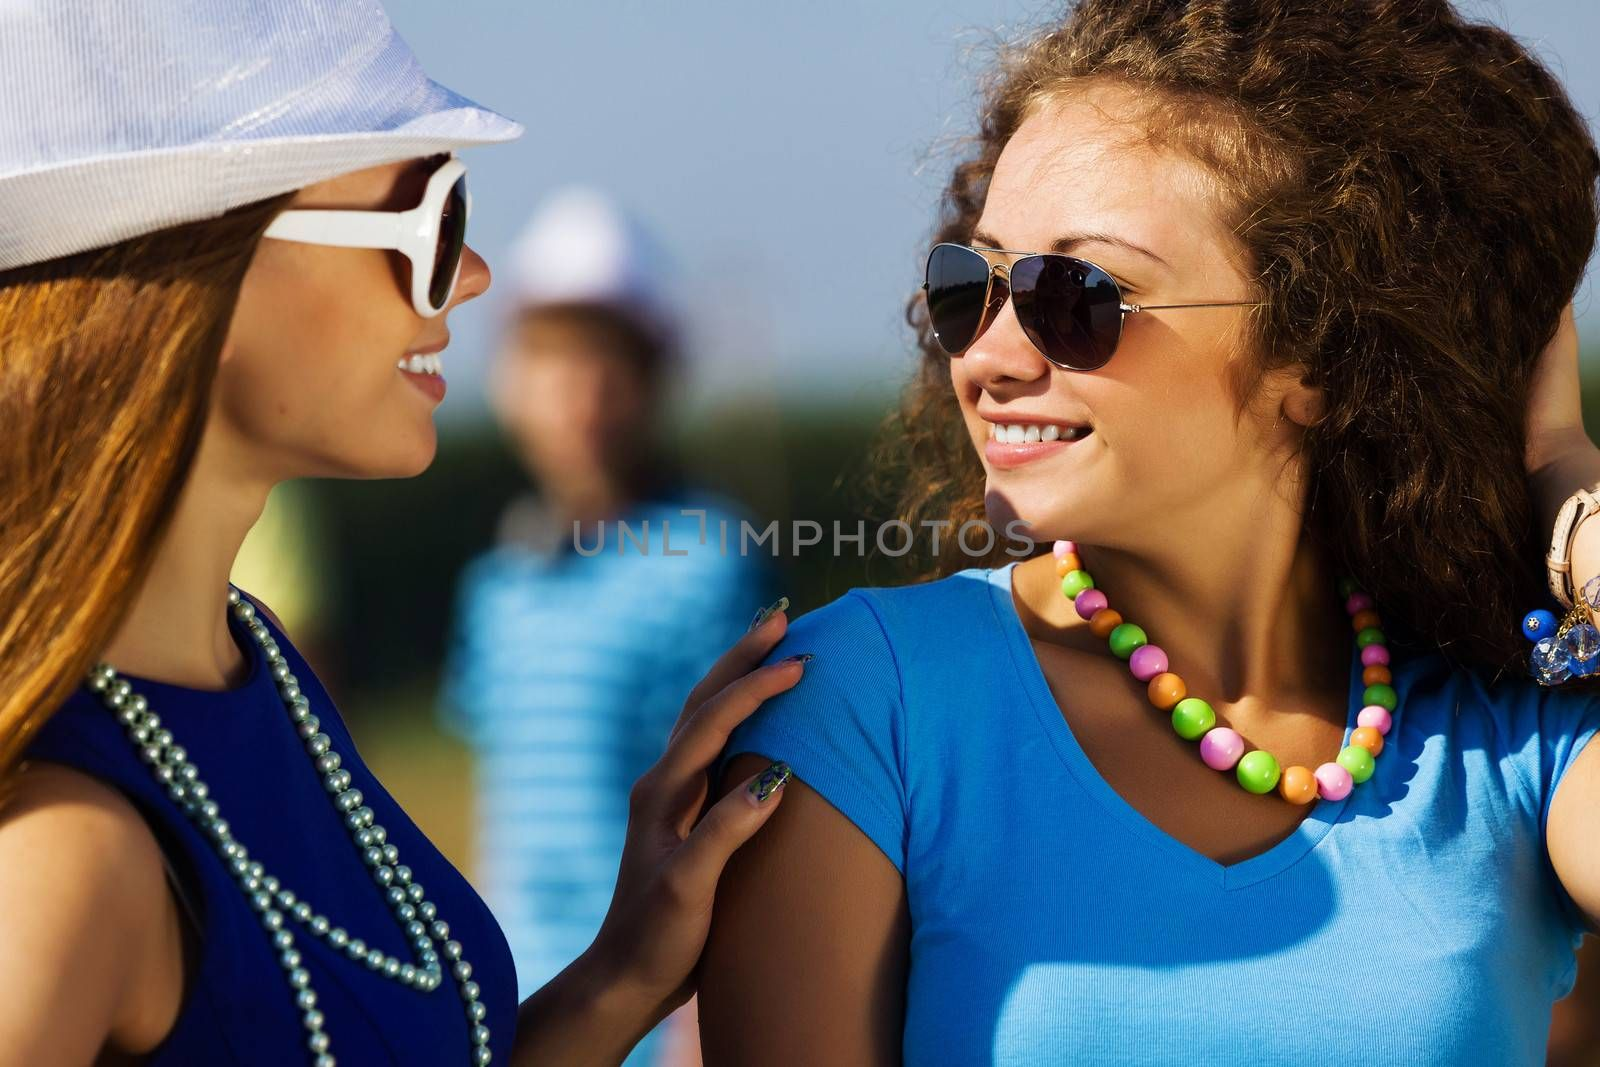 Attractive young women having fun outdoors. Summer vacation